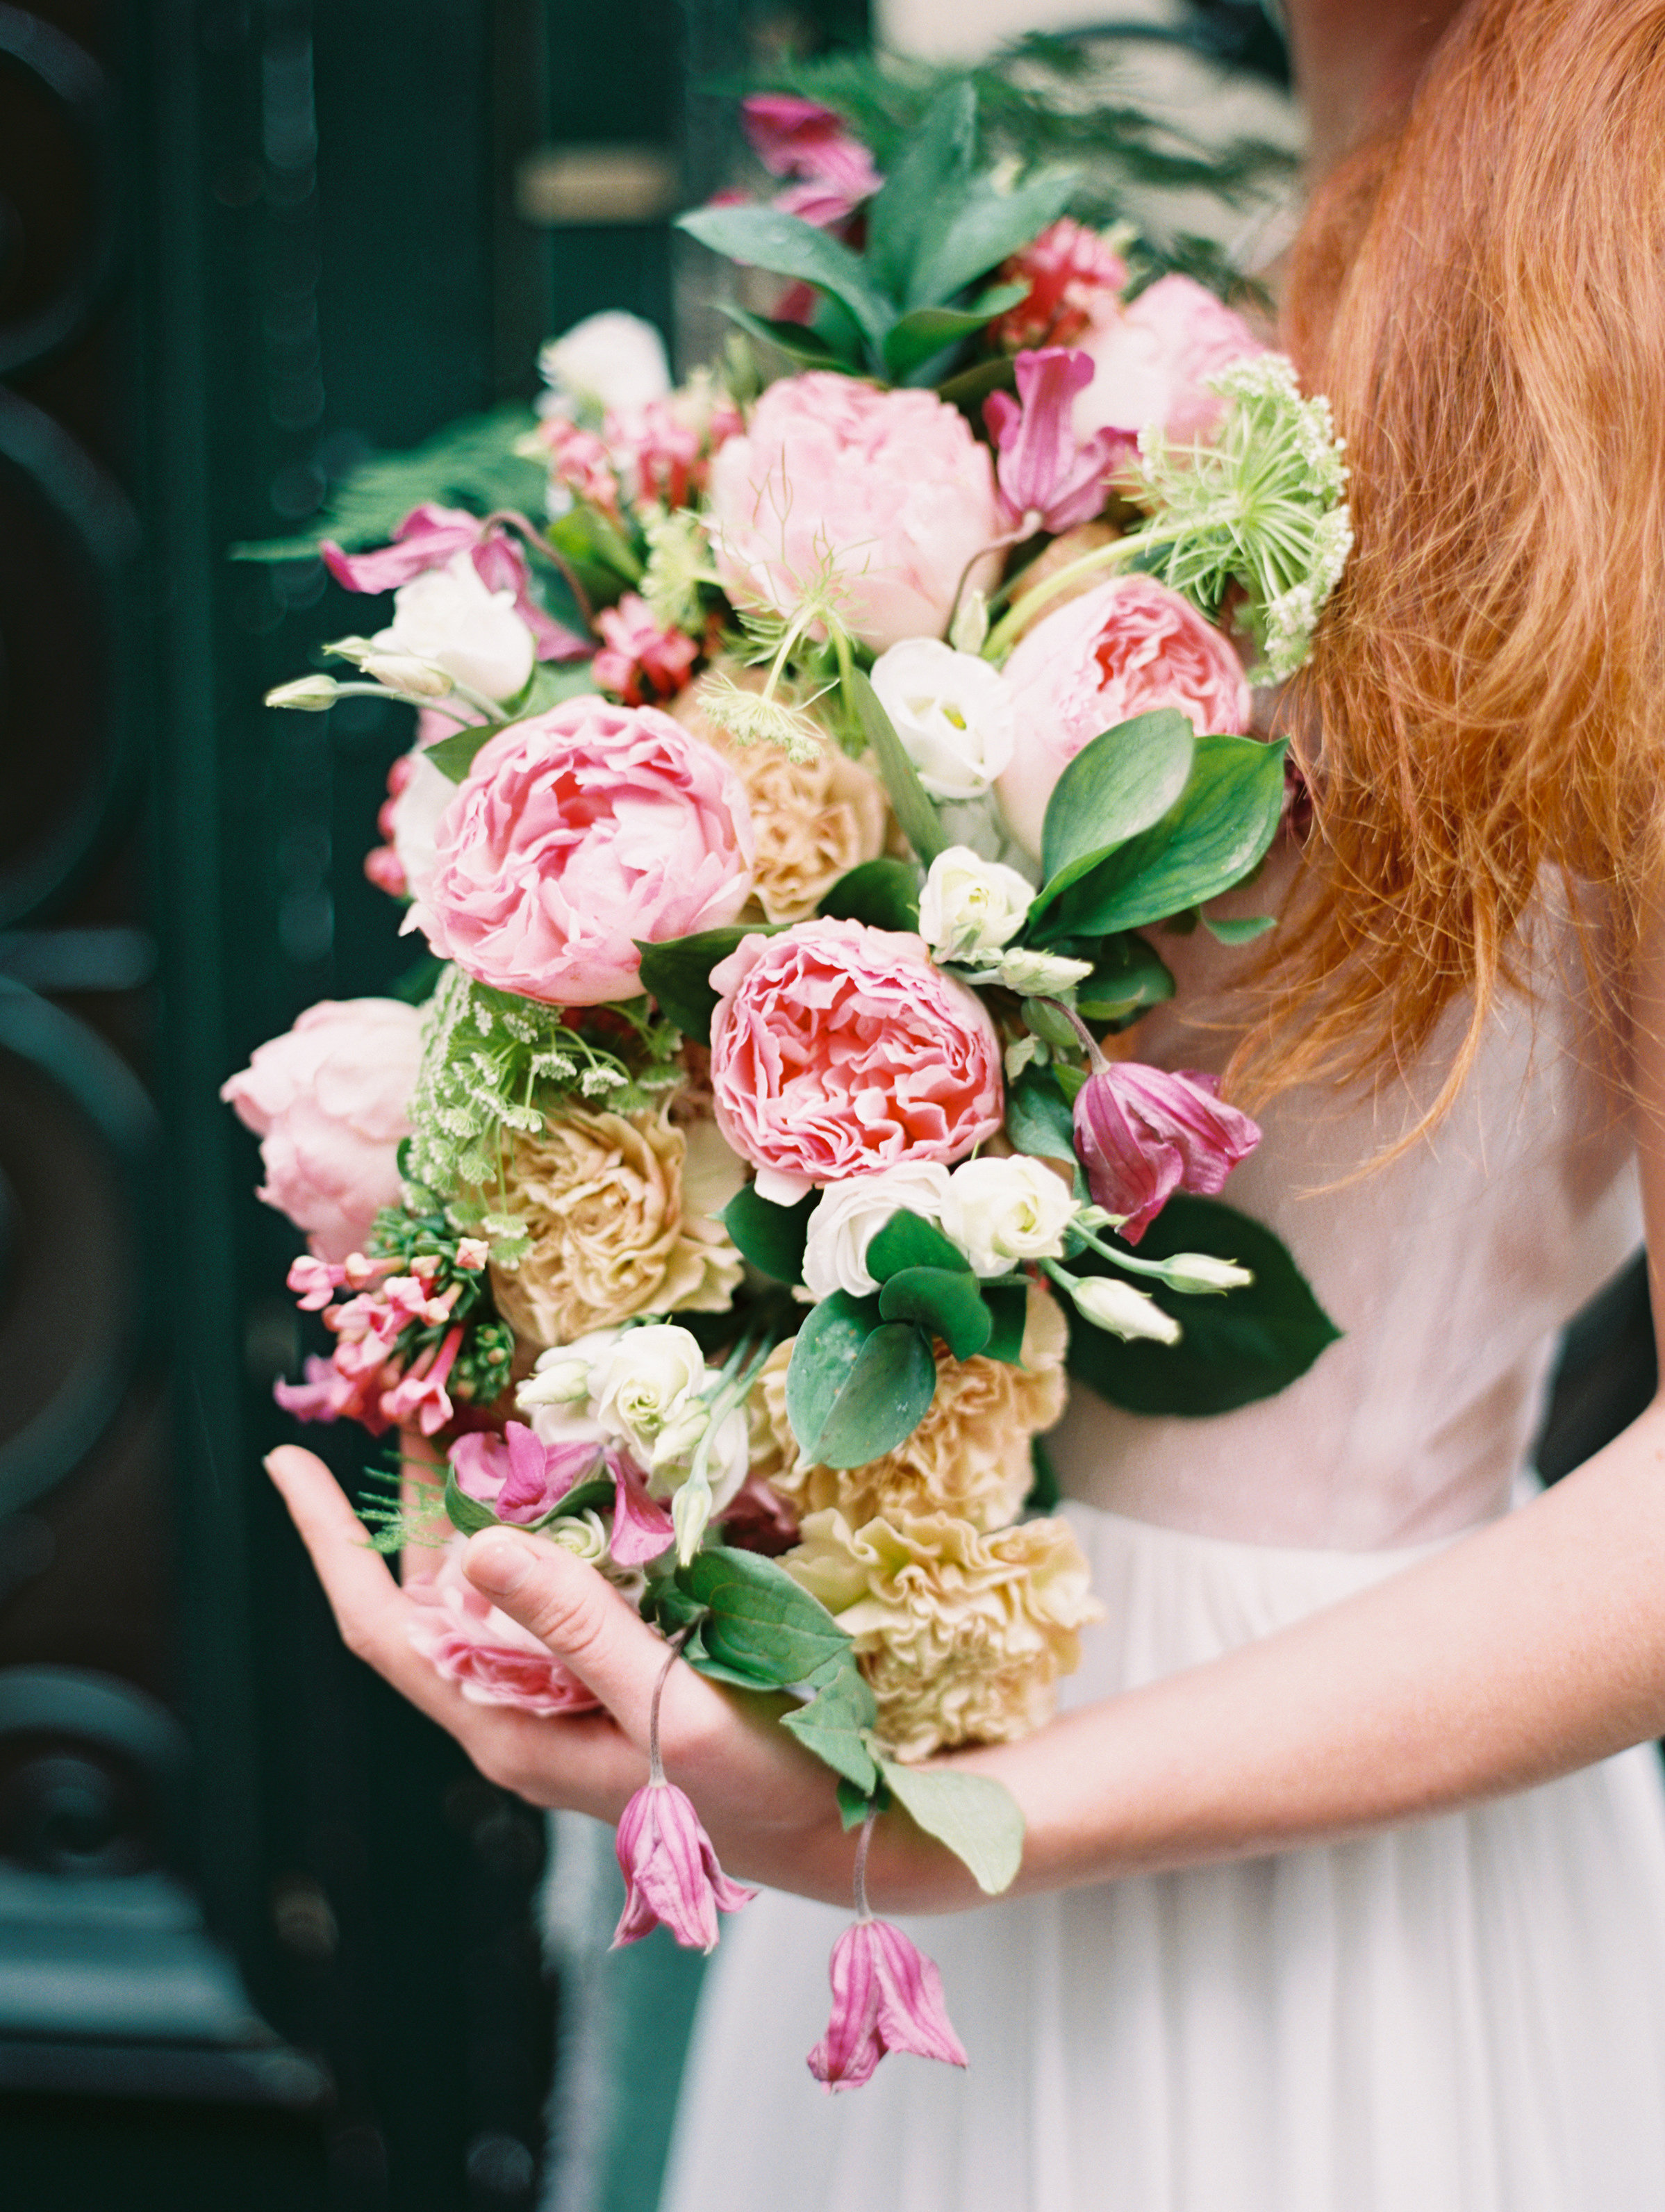 Wedding Flowers in Dallas - Dallas Wedding Florist